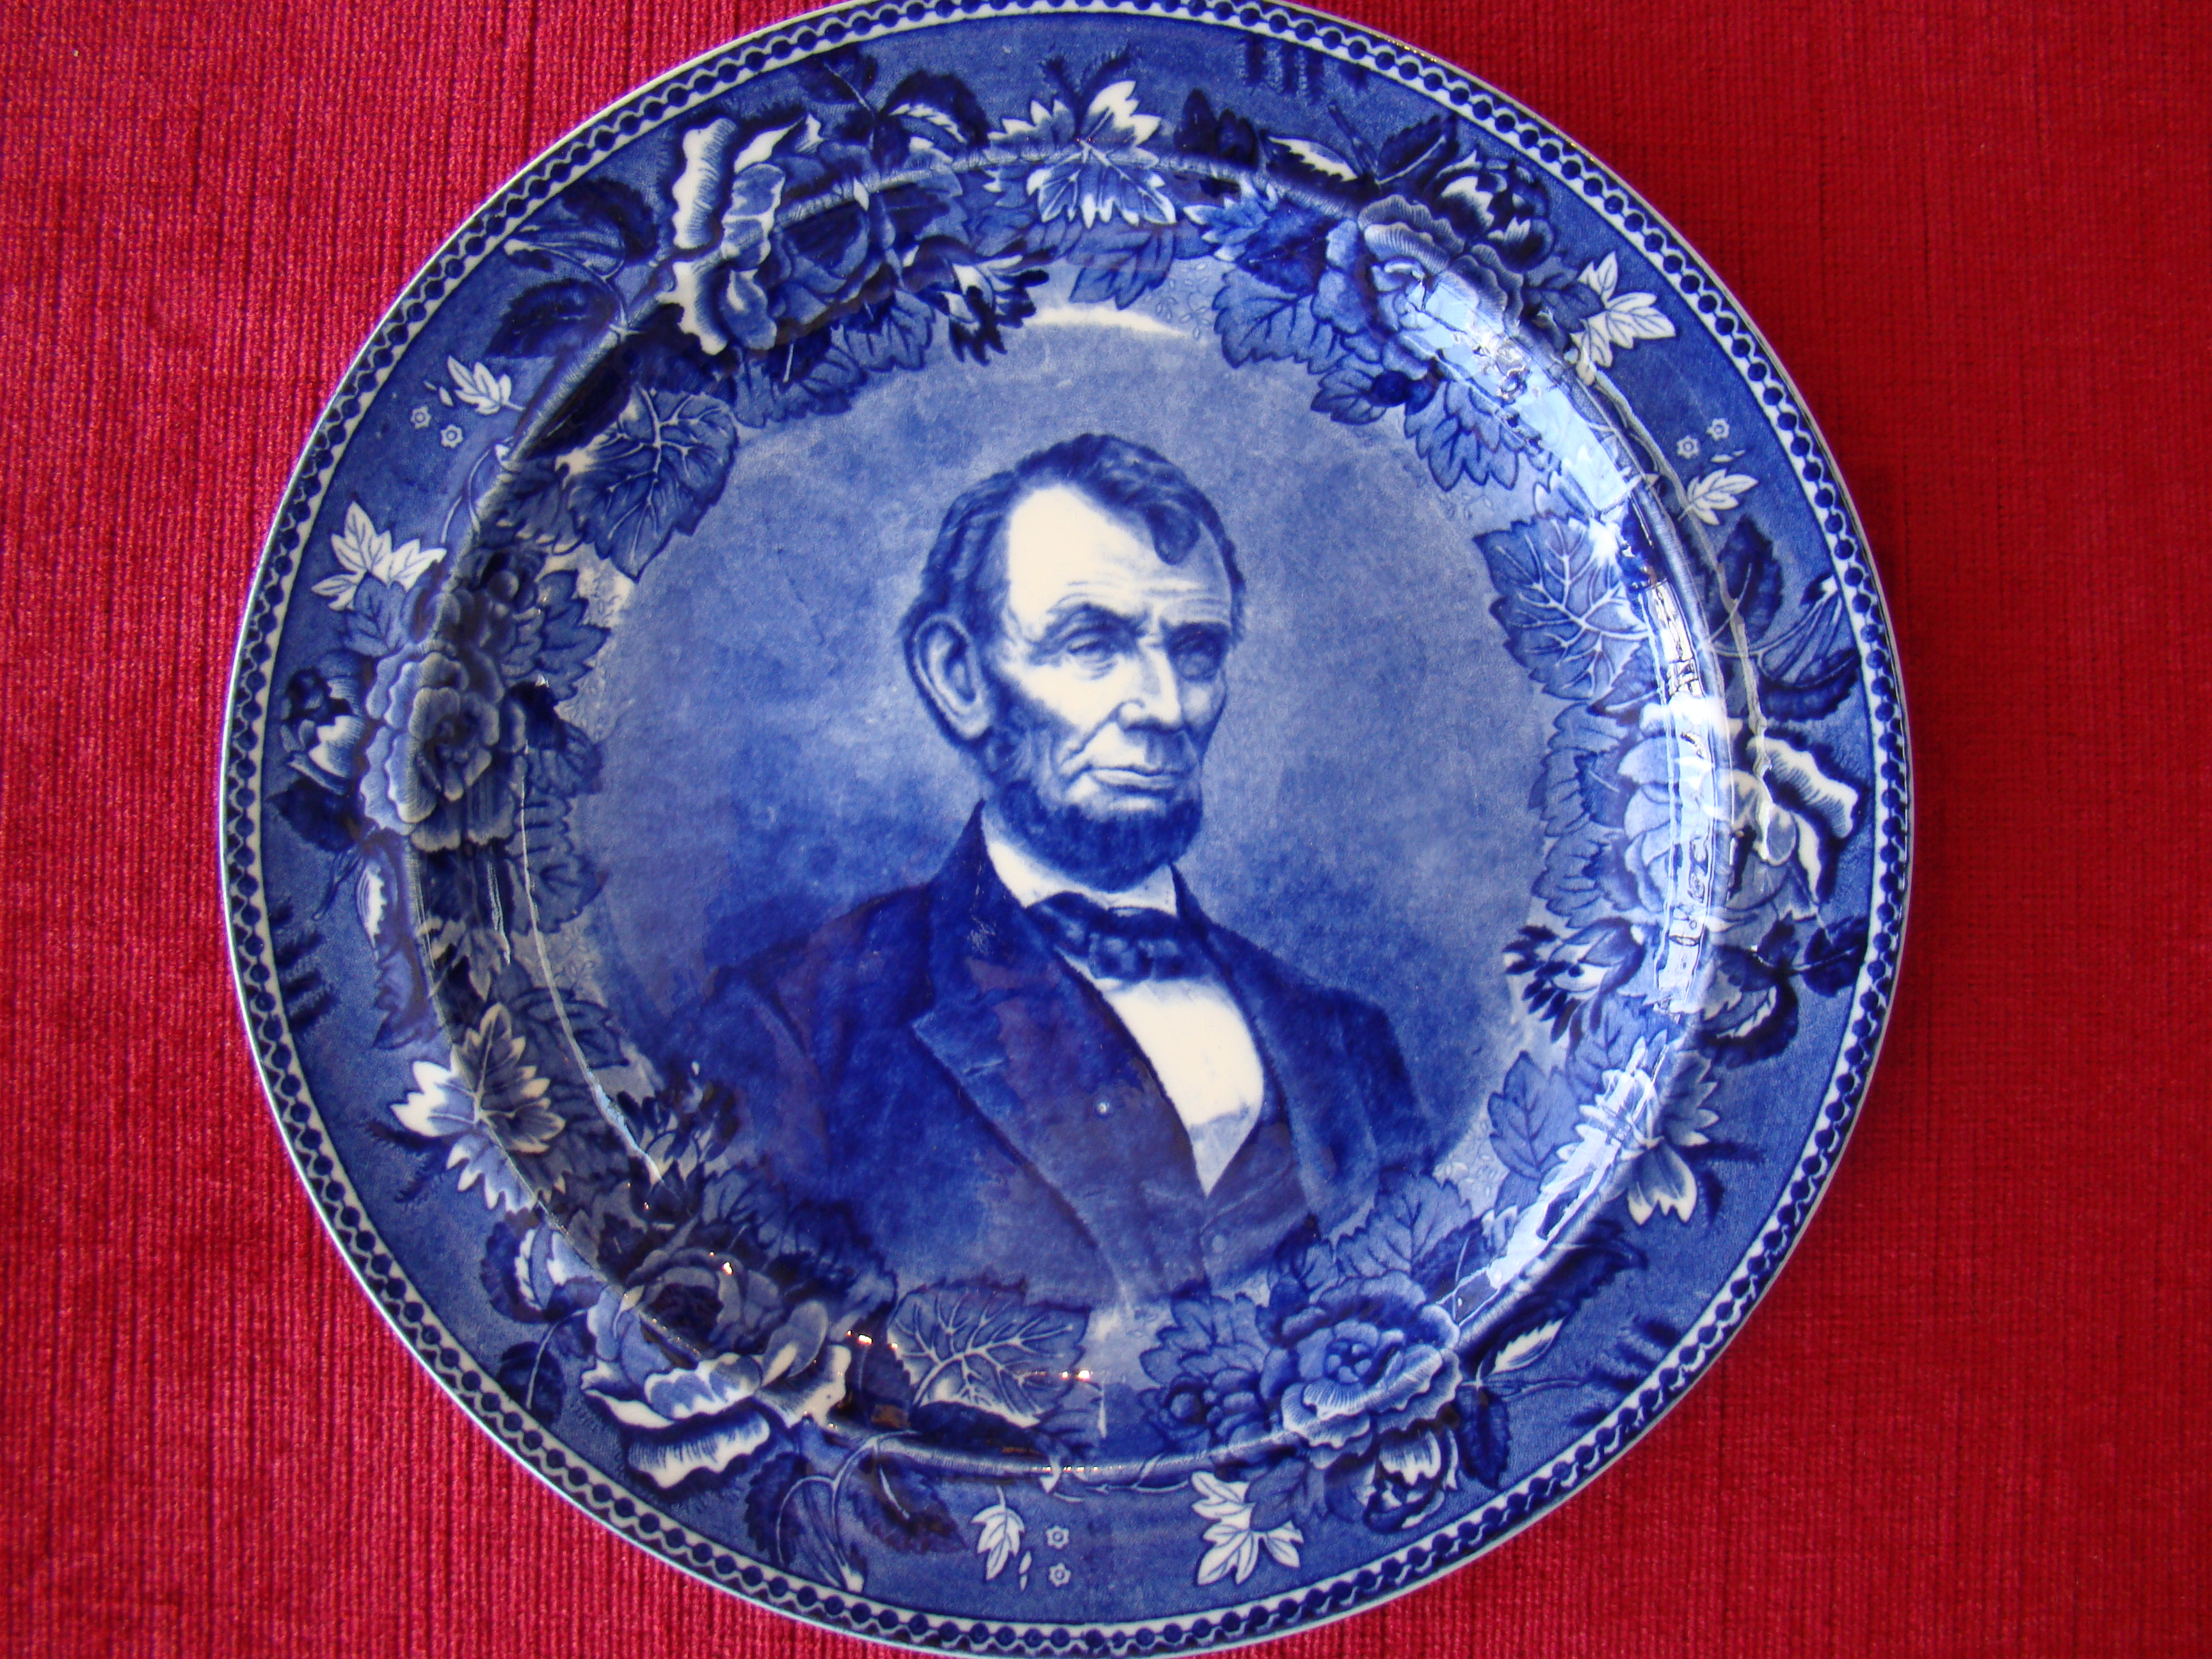 click to view larger image of A fine vintage souvenir plate made by Wedgwood circa 1900 depicting Abraham Lincoln